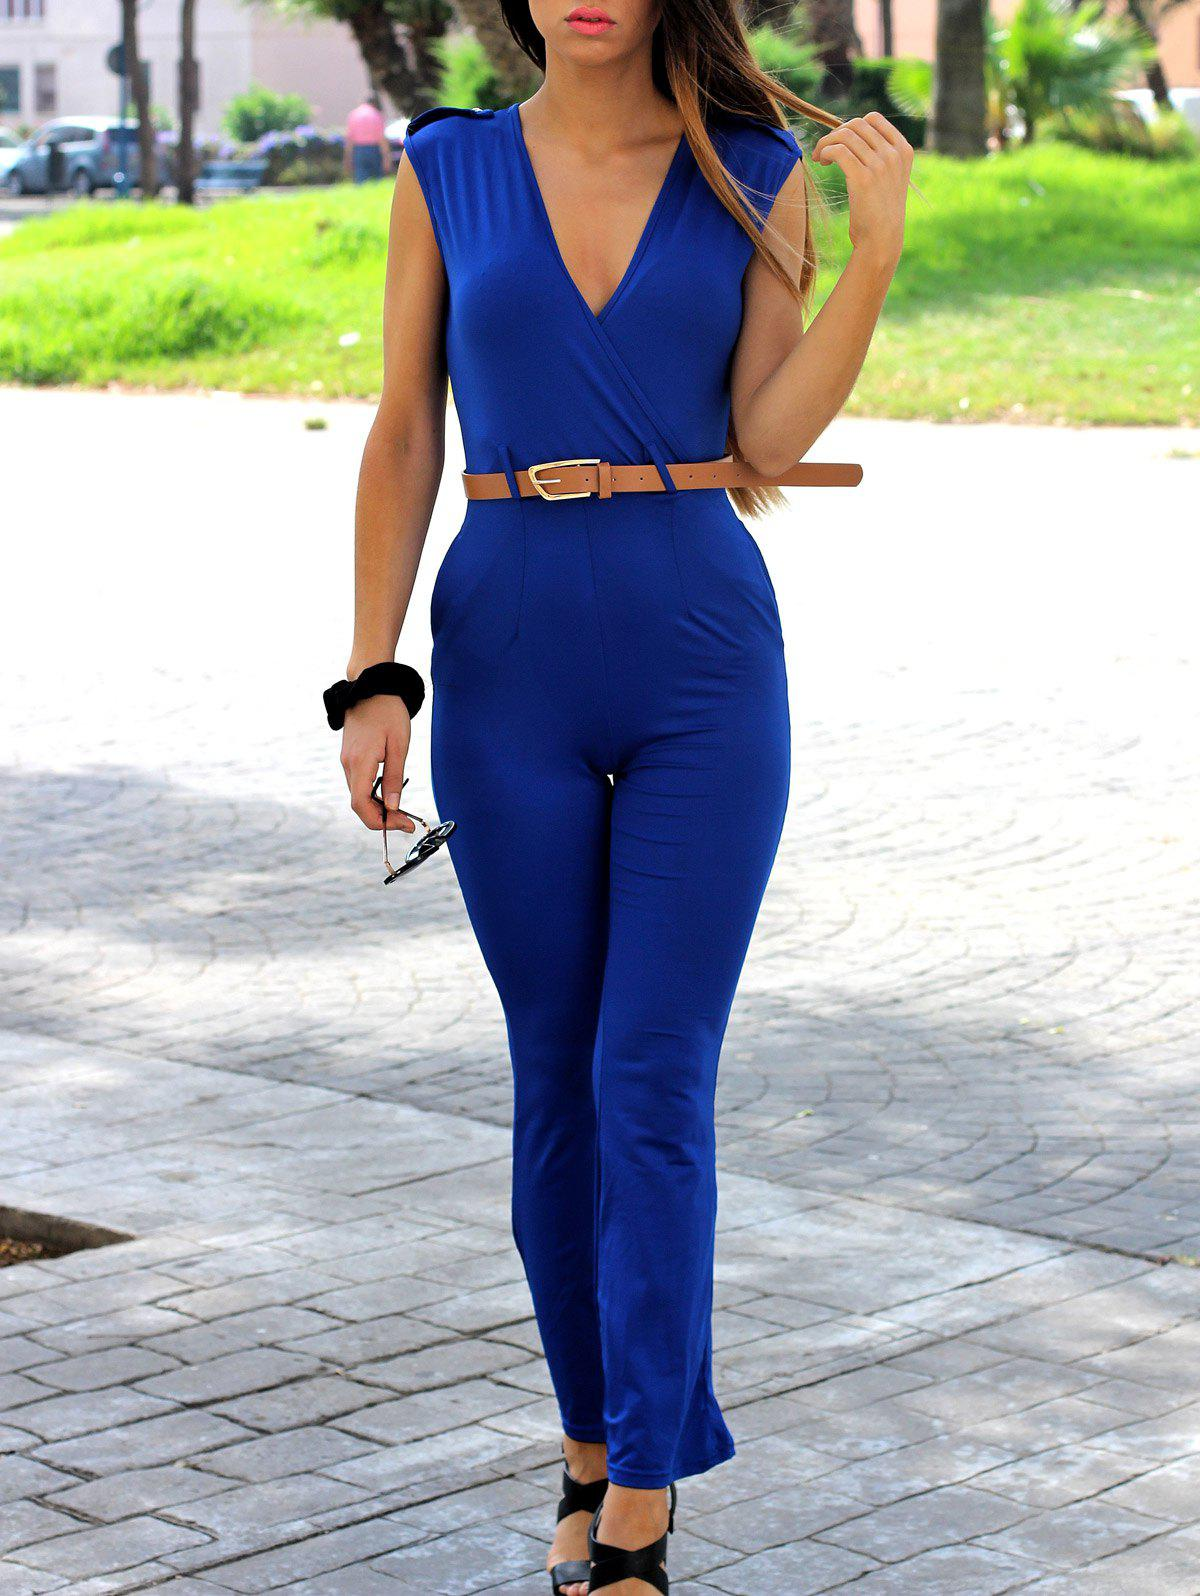 OL Style Women's V-Neck Sleeveless Solid Color Jumpsuit - BLUE S